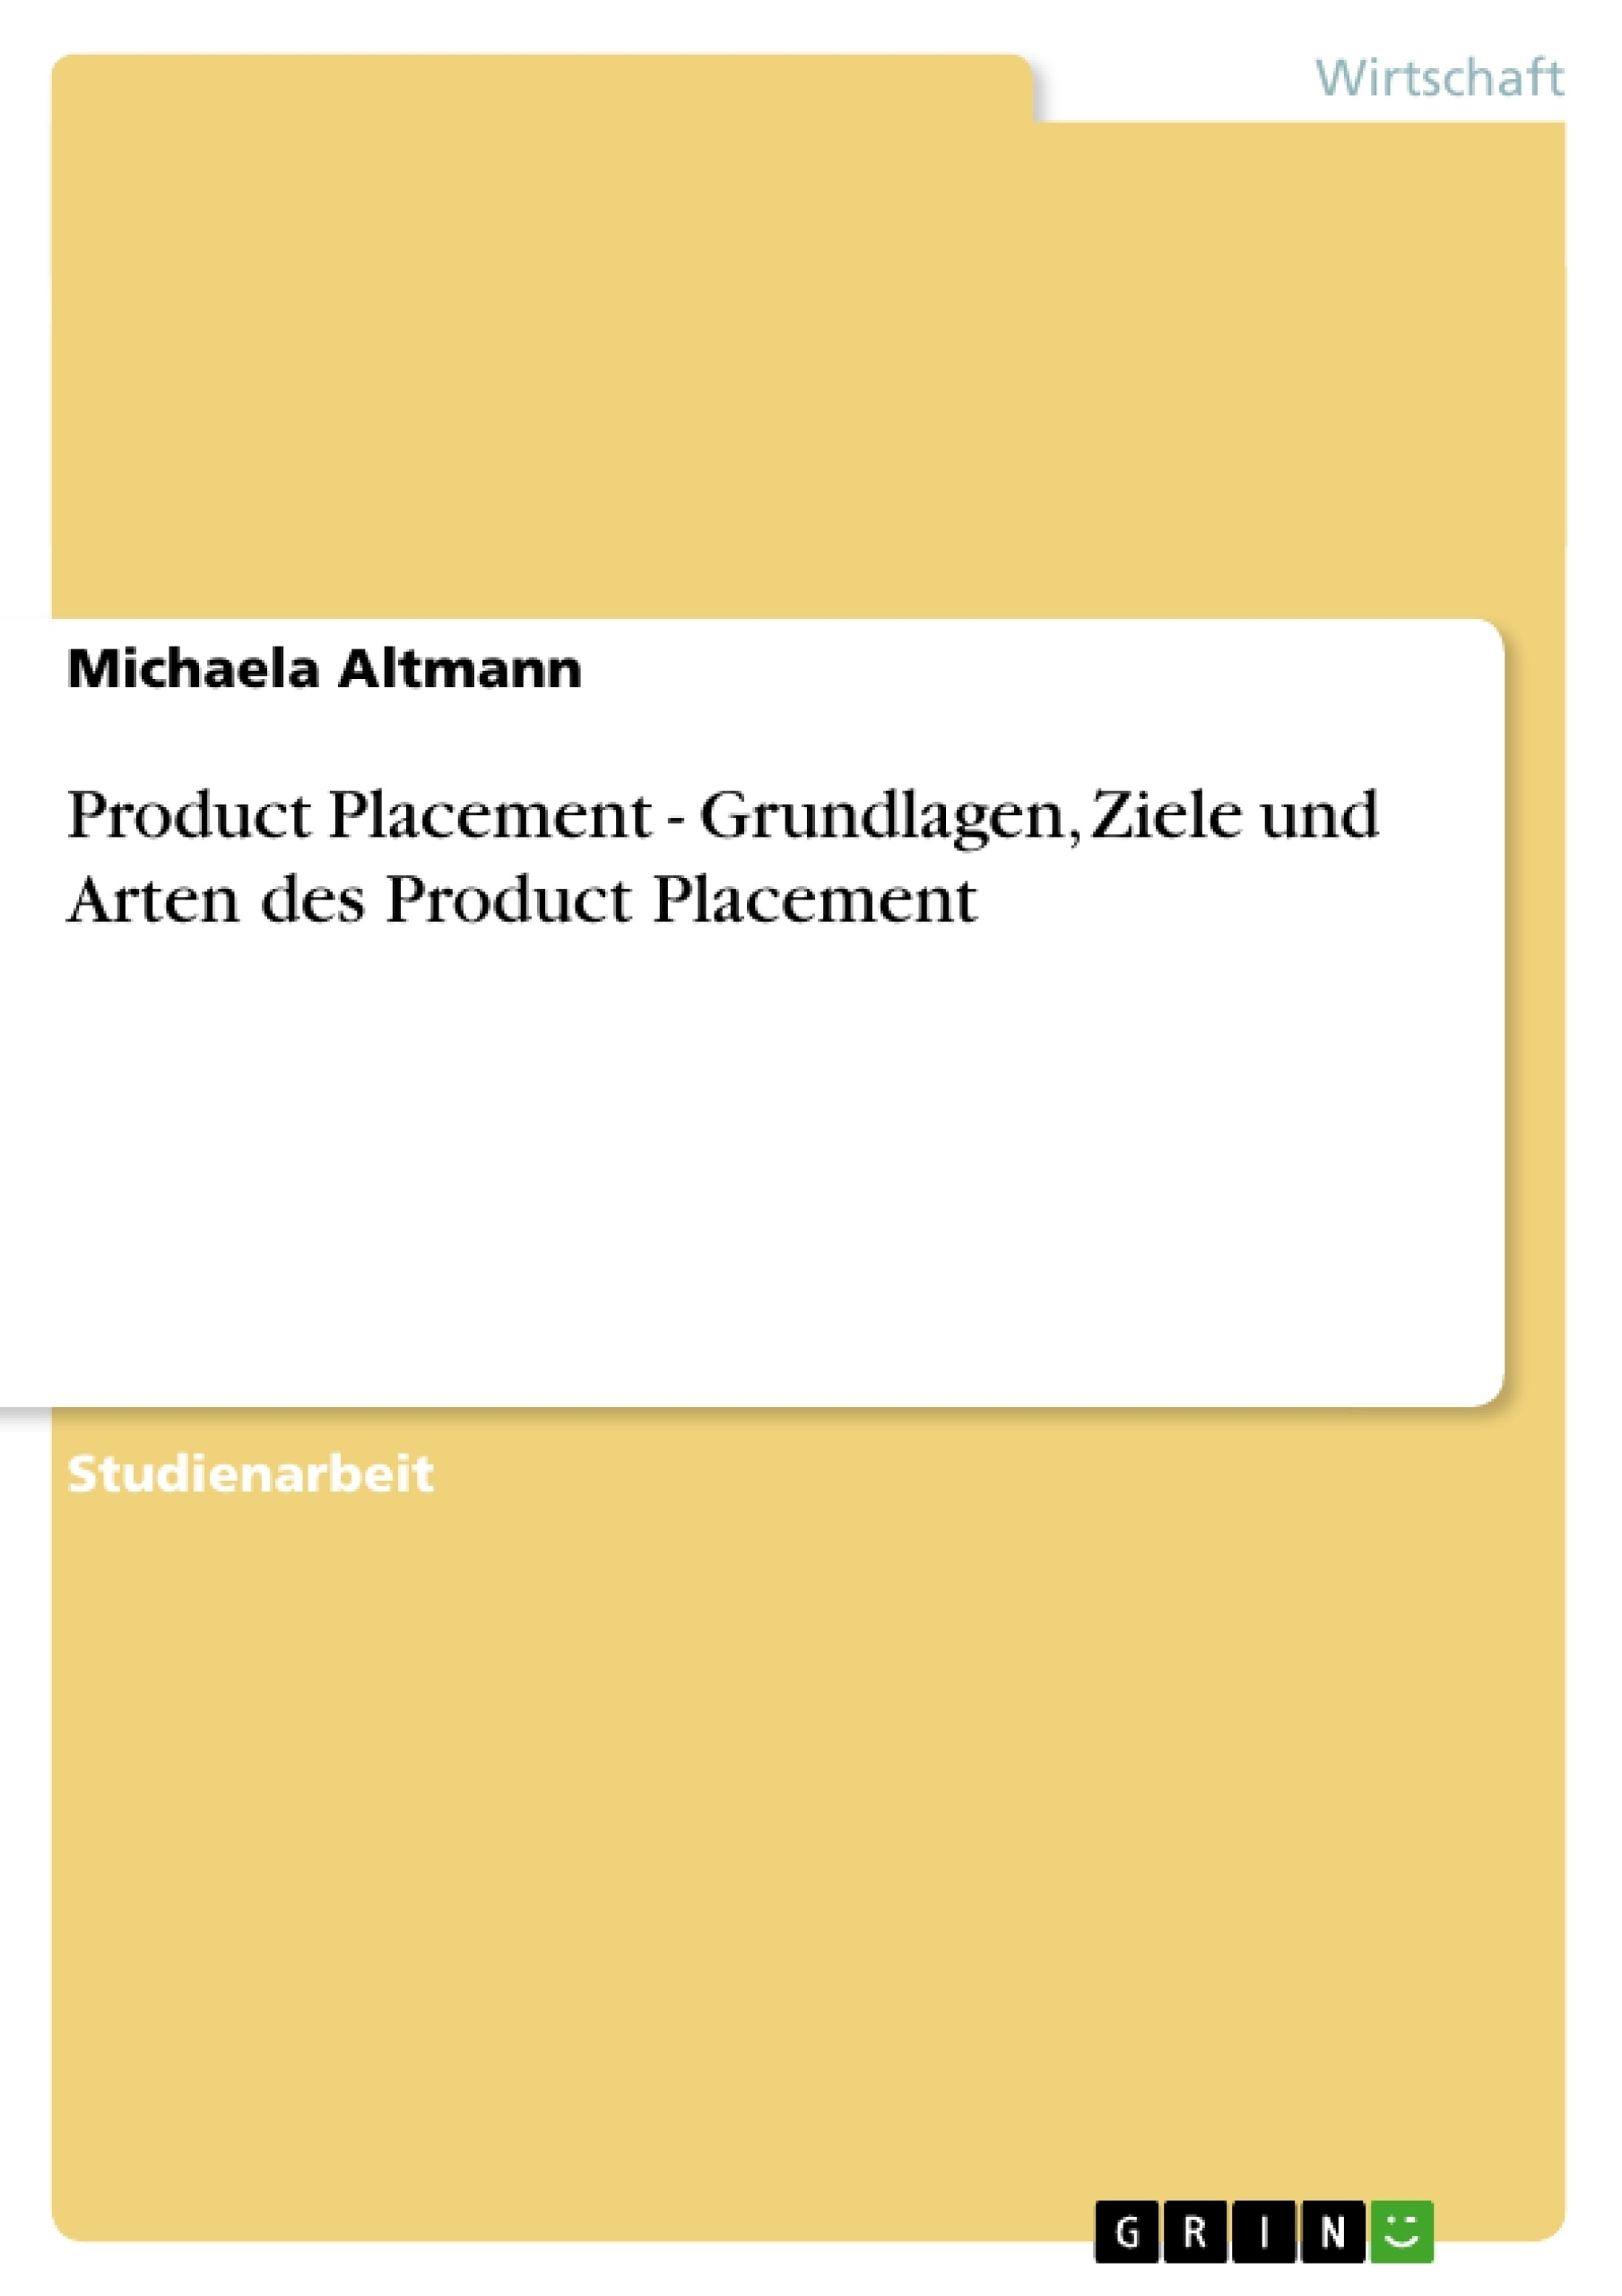 Titel: Product Placement - Grundlagen, Ziele und Arten des Product Placement